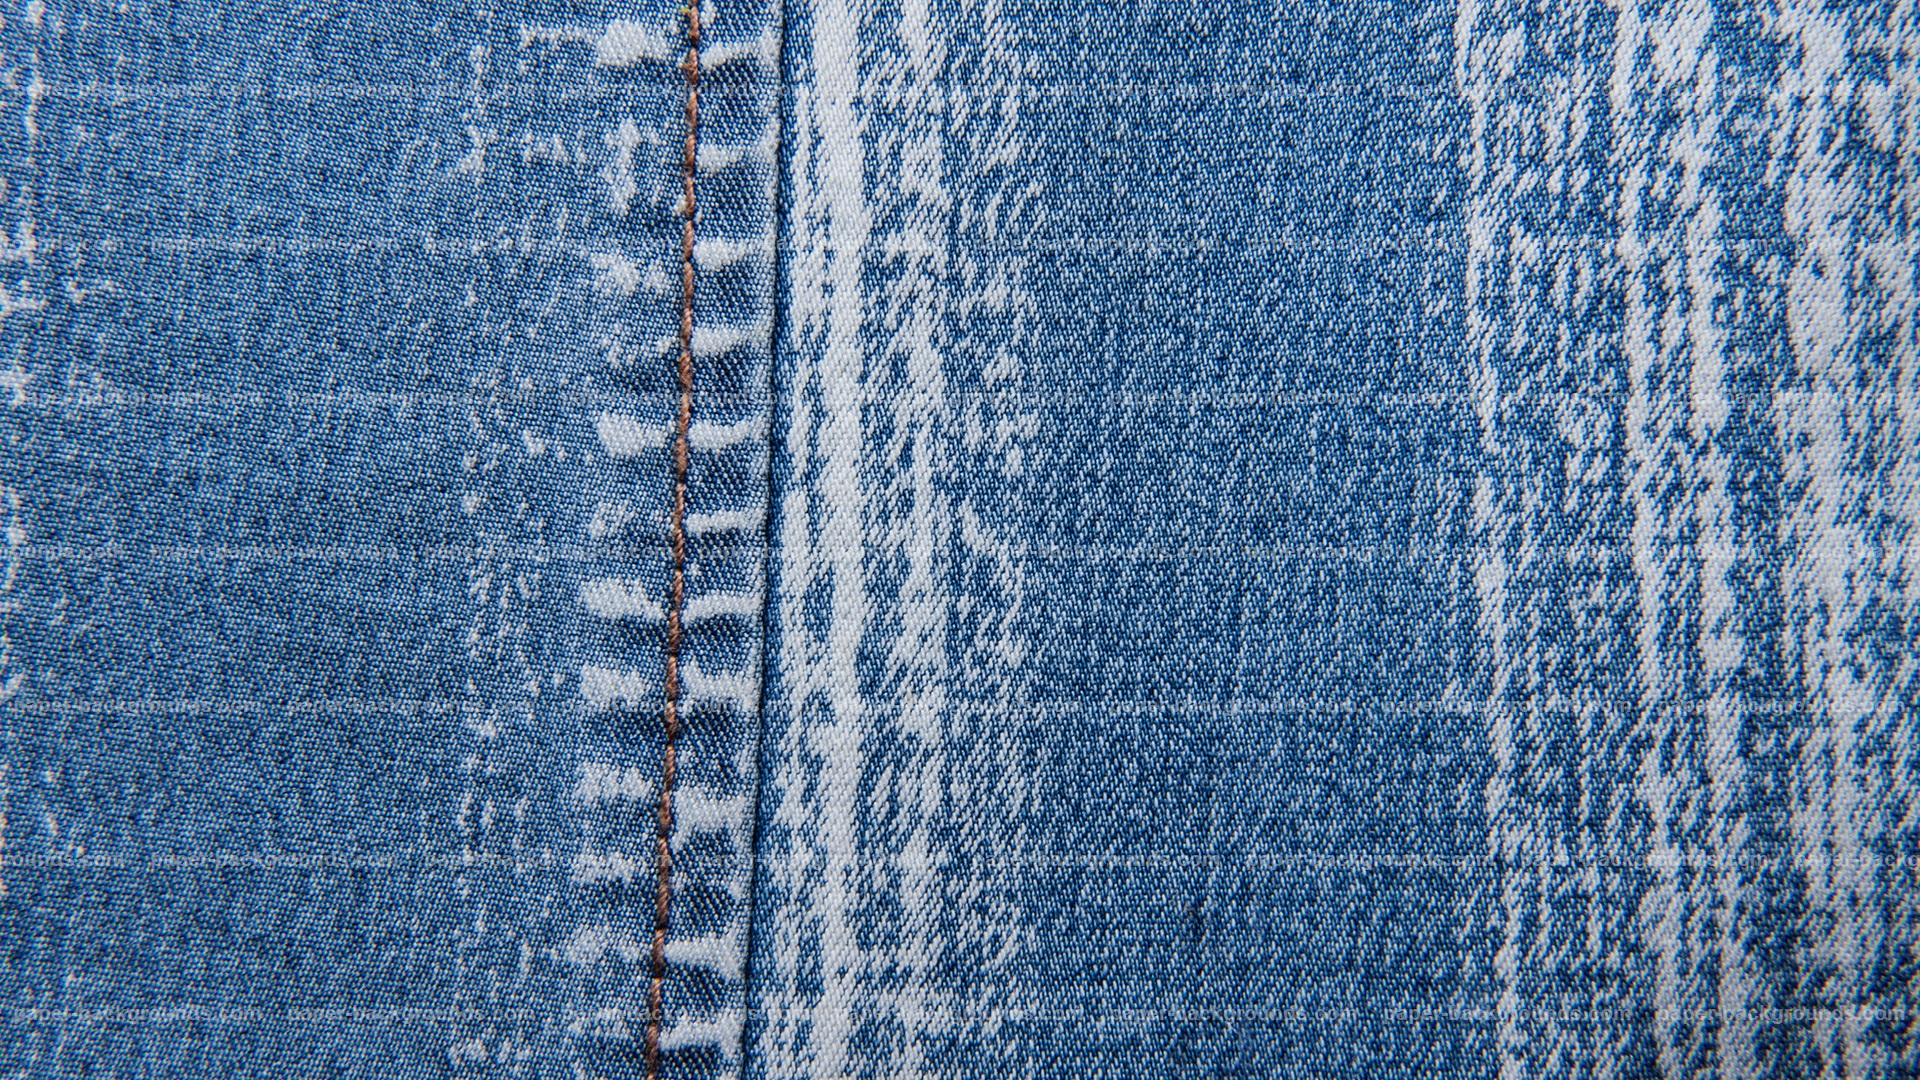 Paper Backgrounds | vintage-blue-jeans-stitched-background-texture-hd